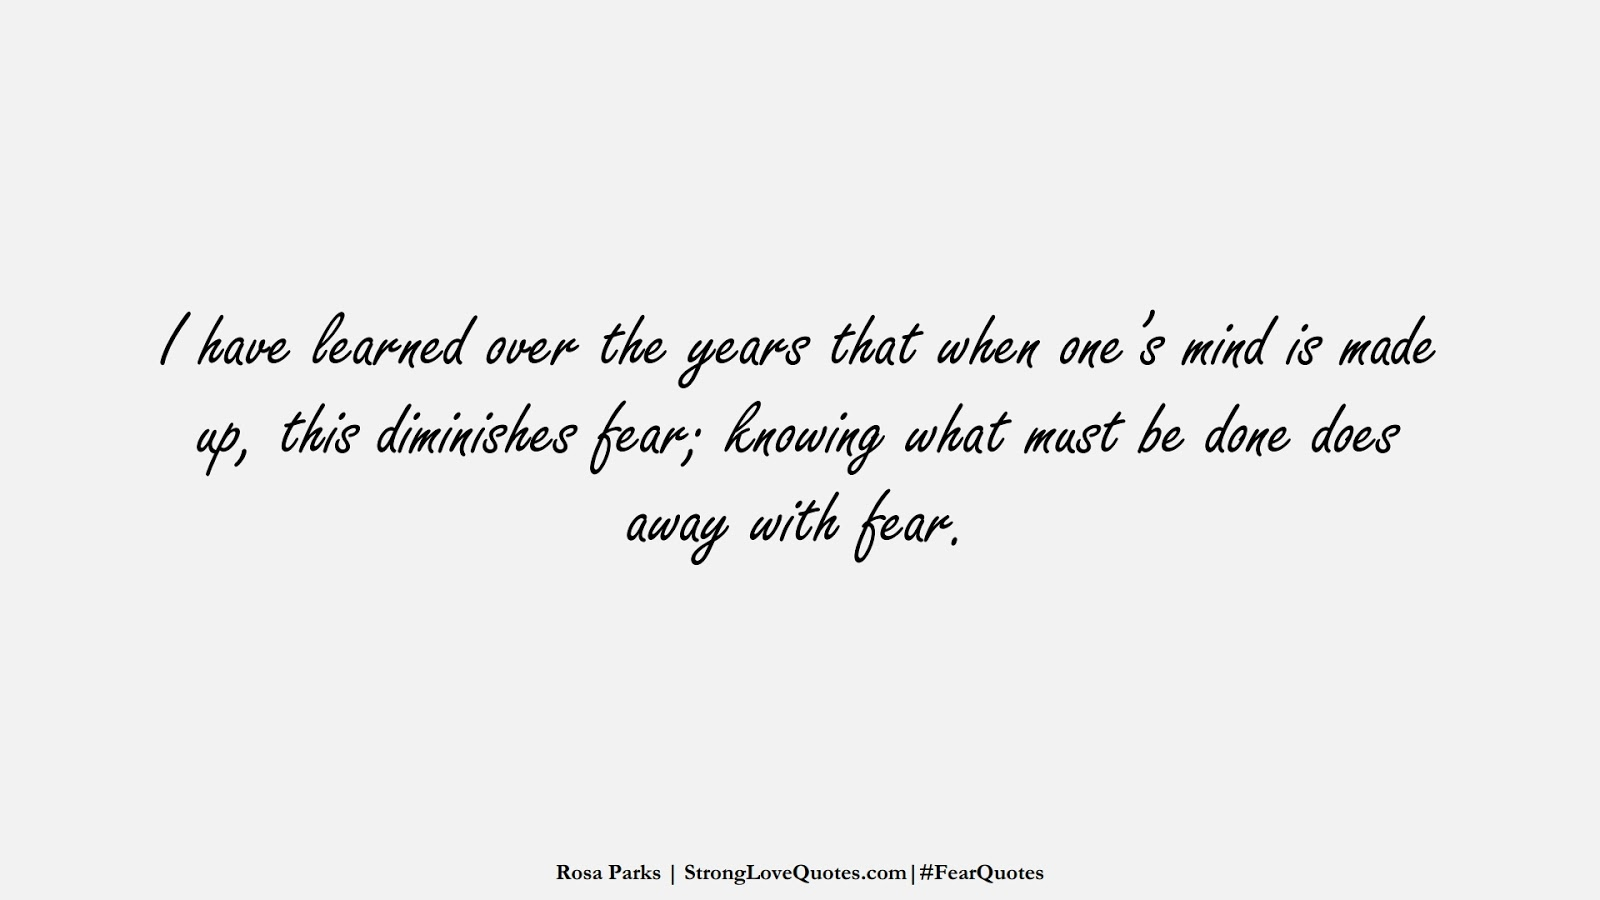 I have learned over the years that when one's mind is made up, this diminishes fear; knowing what must be done does away with fear. (Rosa Parks);  #FearQuotes